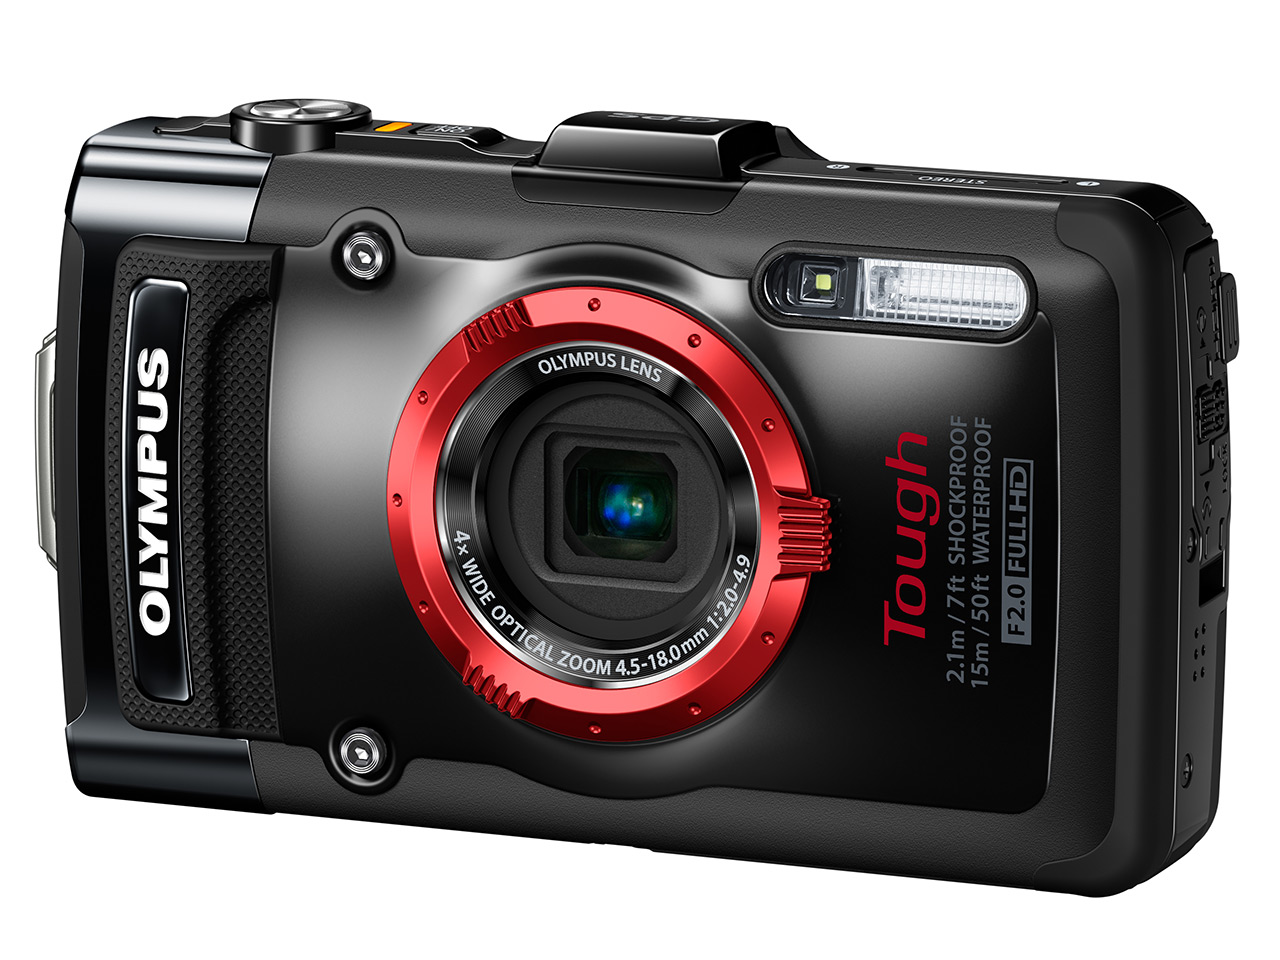 olympus launches stylus tough tg-2 ihs tough underwater camera